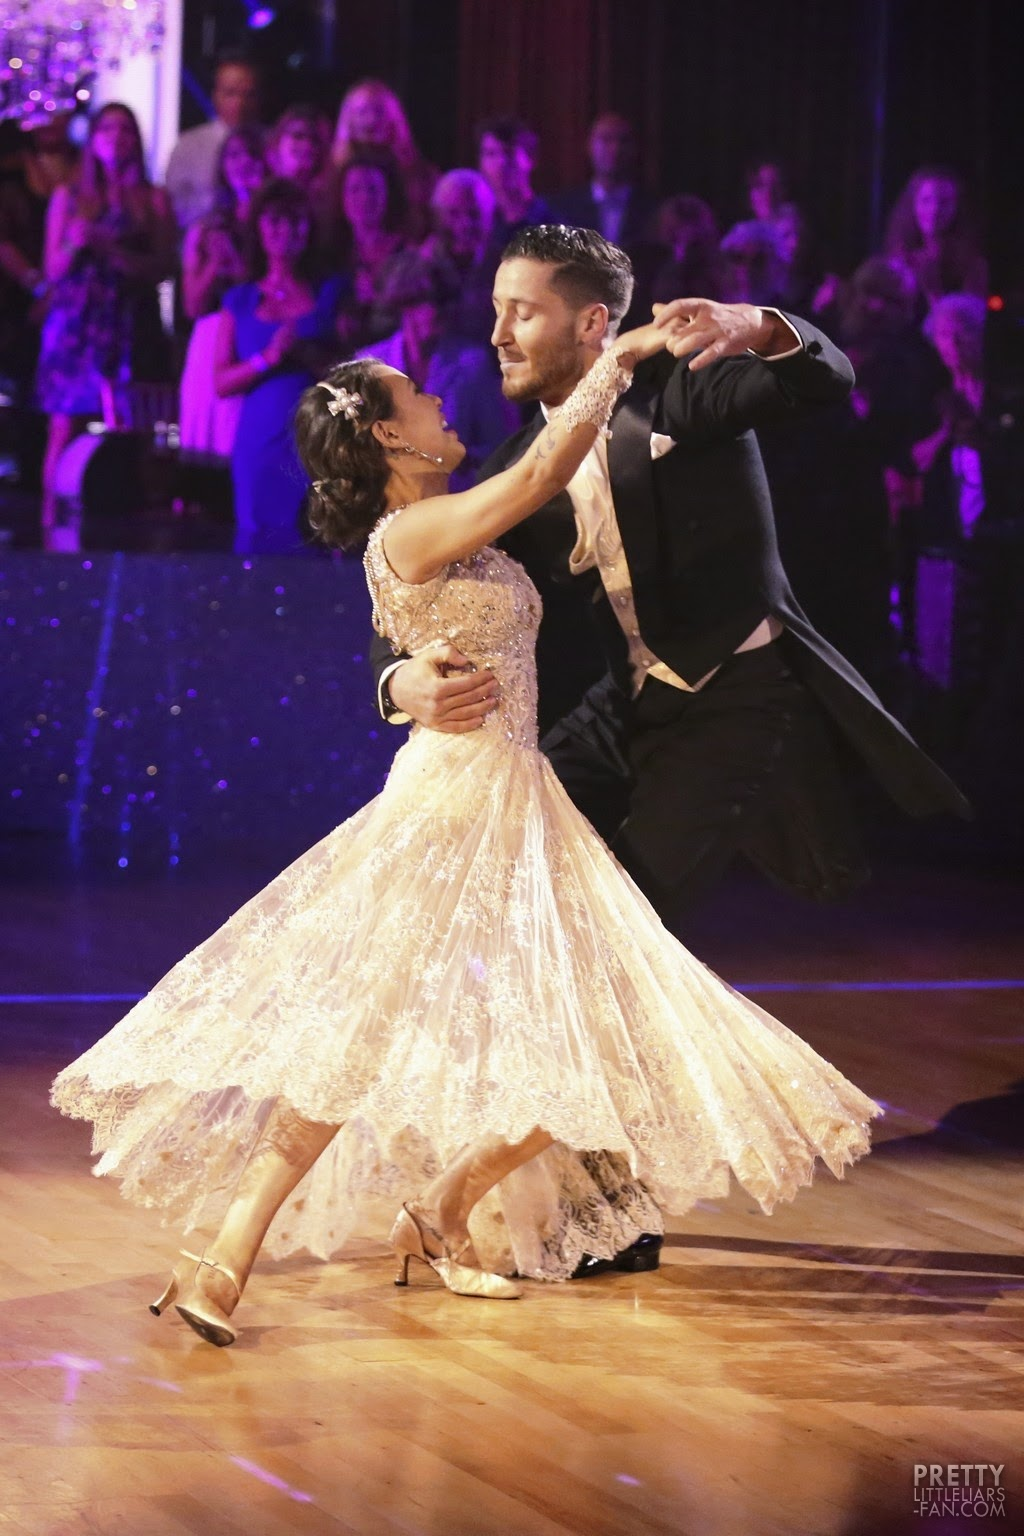 Is val hookup janel on dancing with the stars